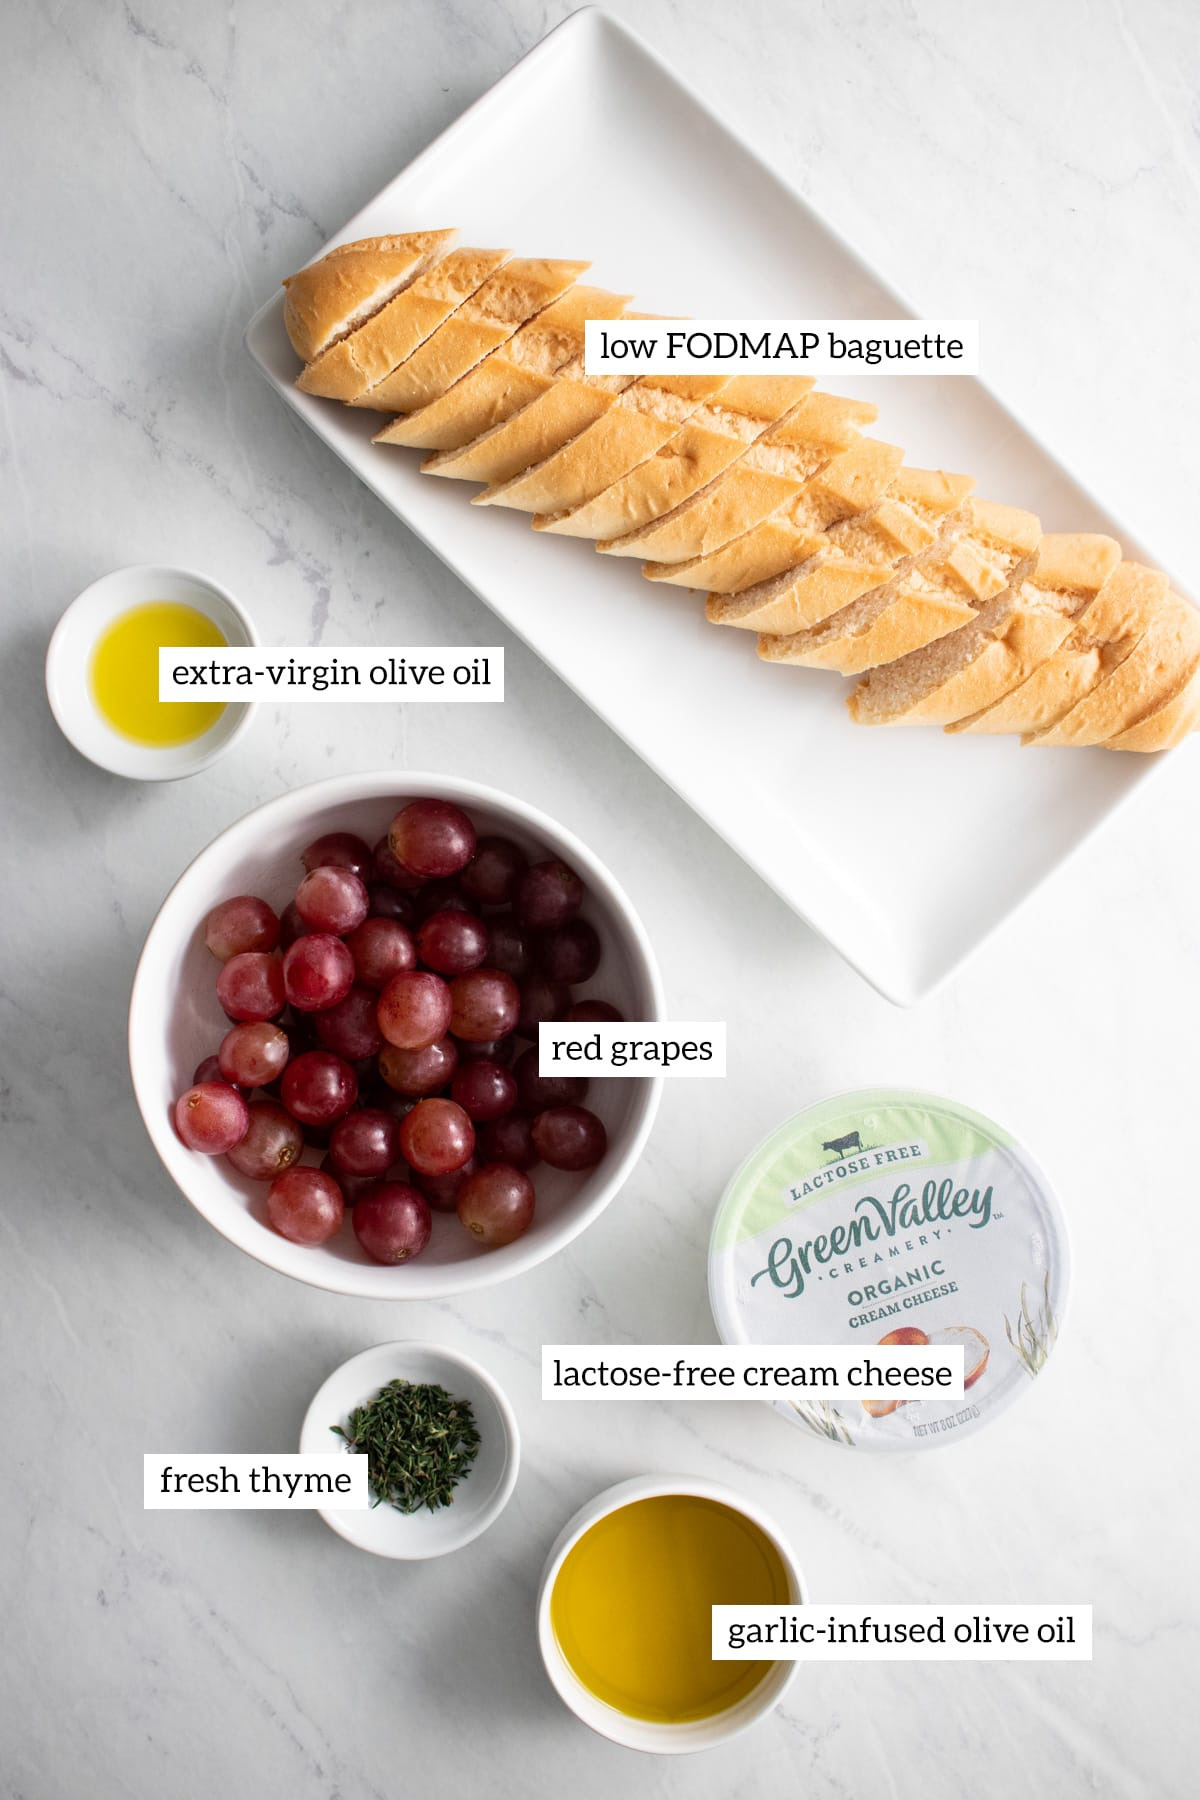 Ingredients for low FODMAP crostini with roasted grapes and thyme are measured out into individual bowls.